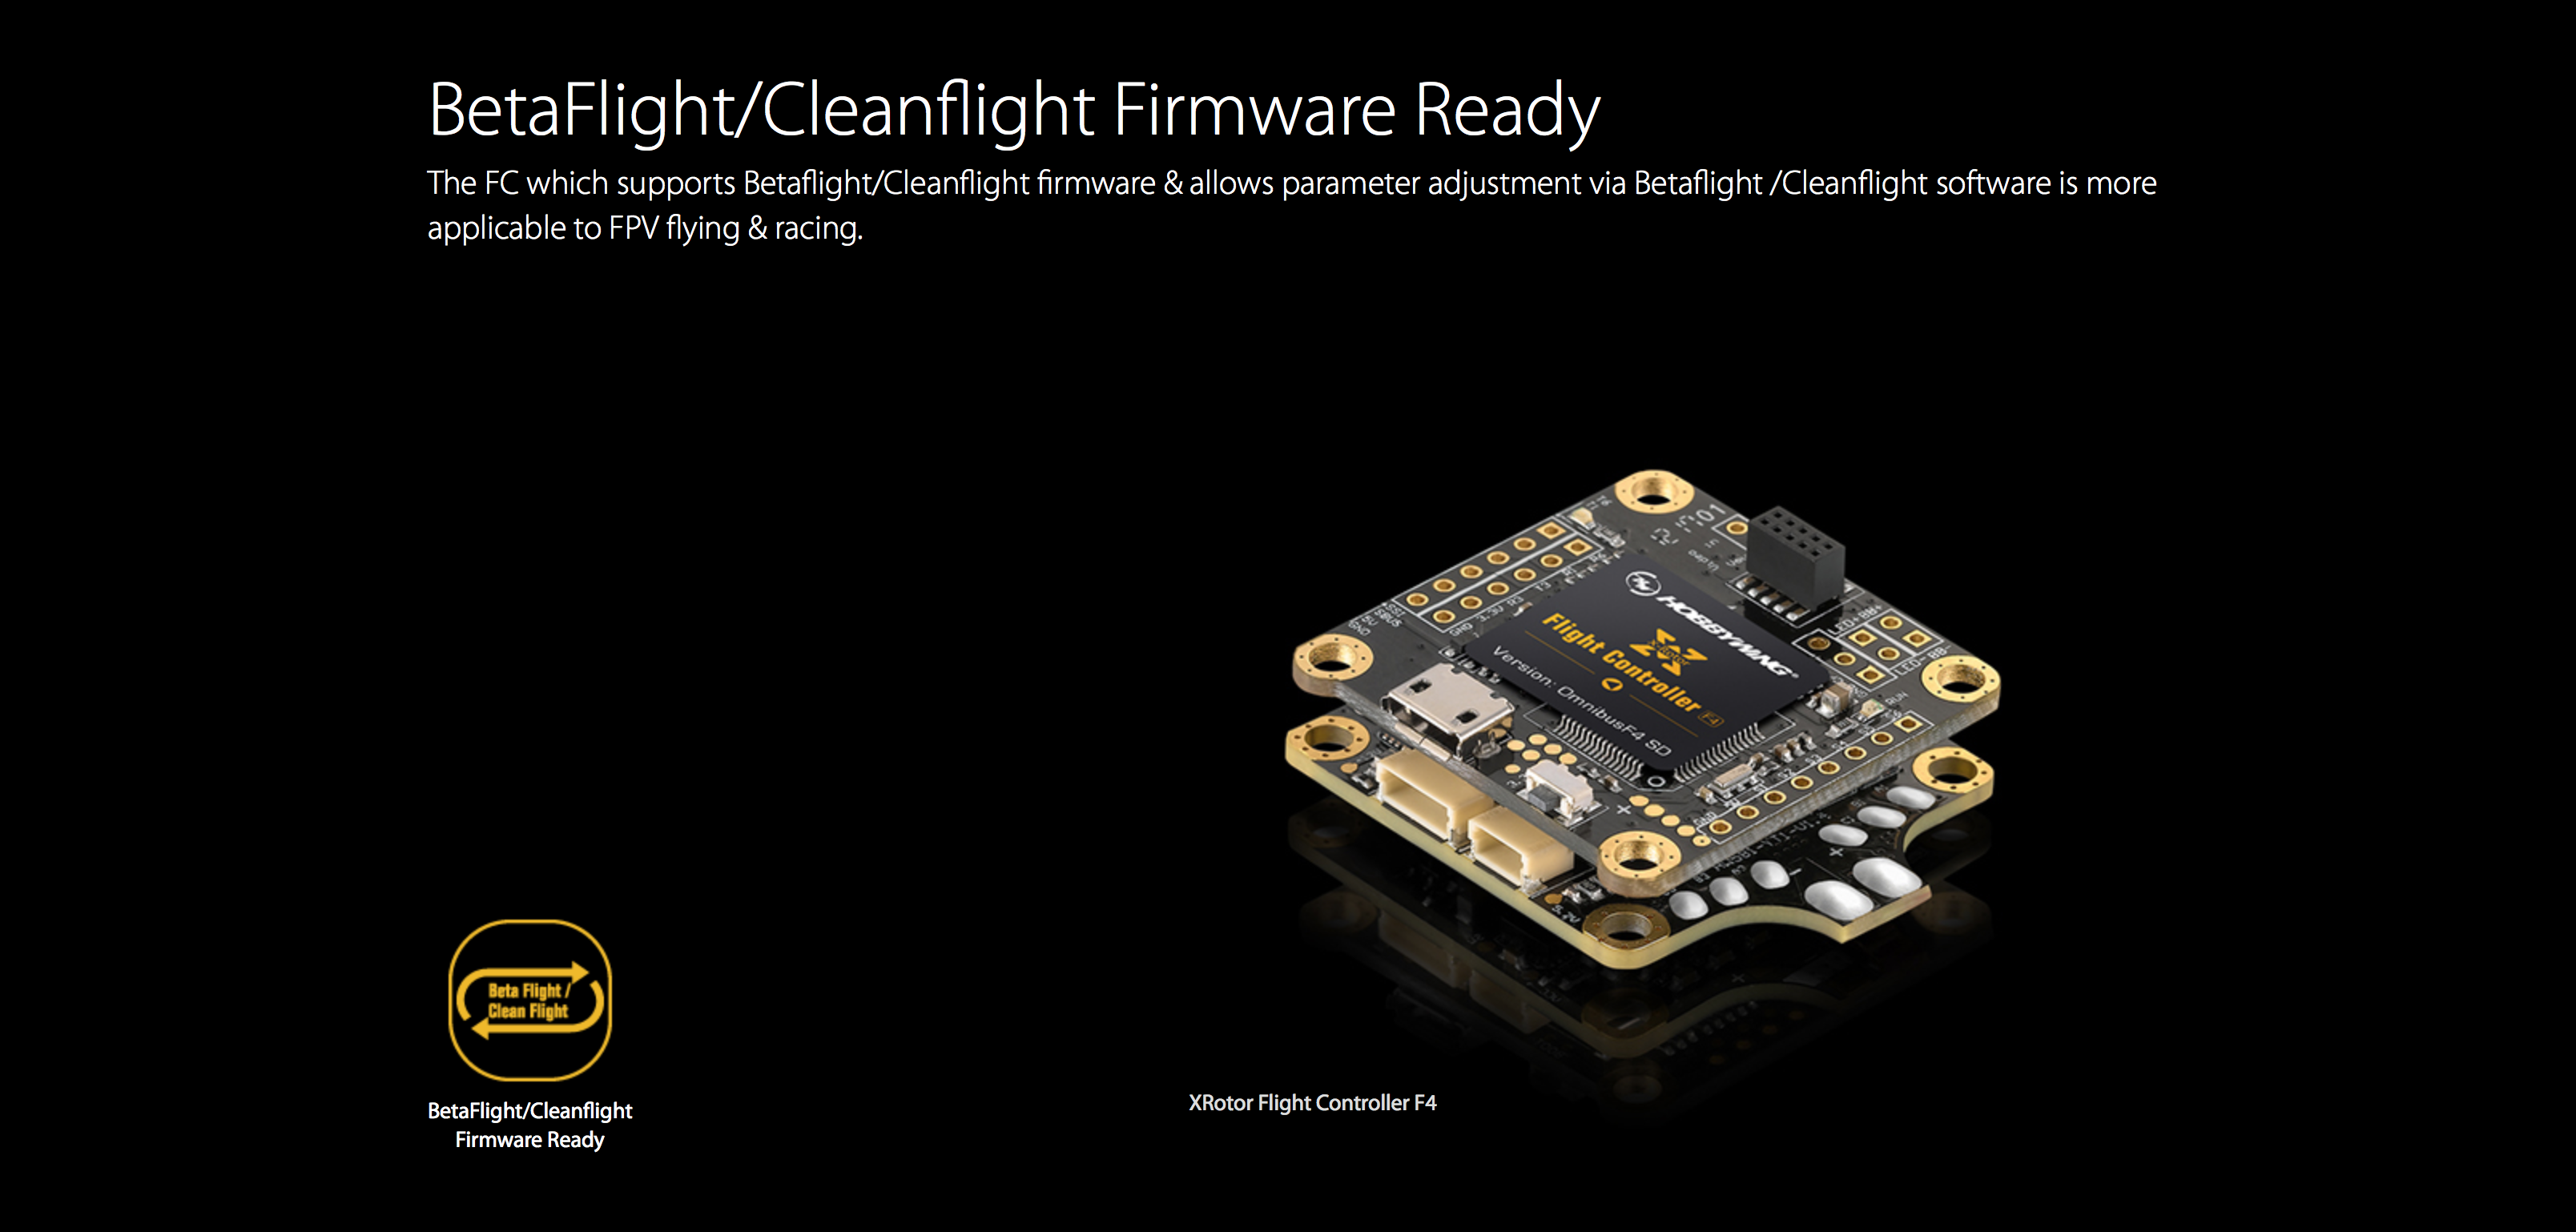 BetaFlight/Cleanflight Firmware Ready The FC which supports Betaflight/Cleanflight firmware & allows parameter adjustment via Betaflight /Cleanflight software is more applicable to FPV flying & racing.